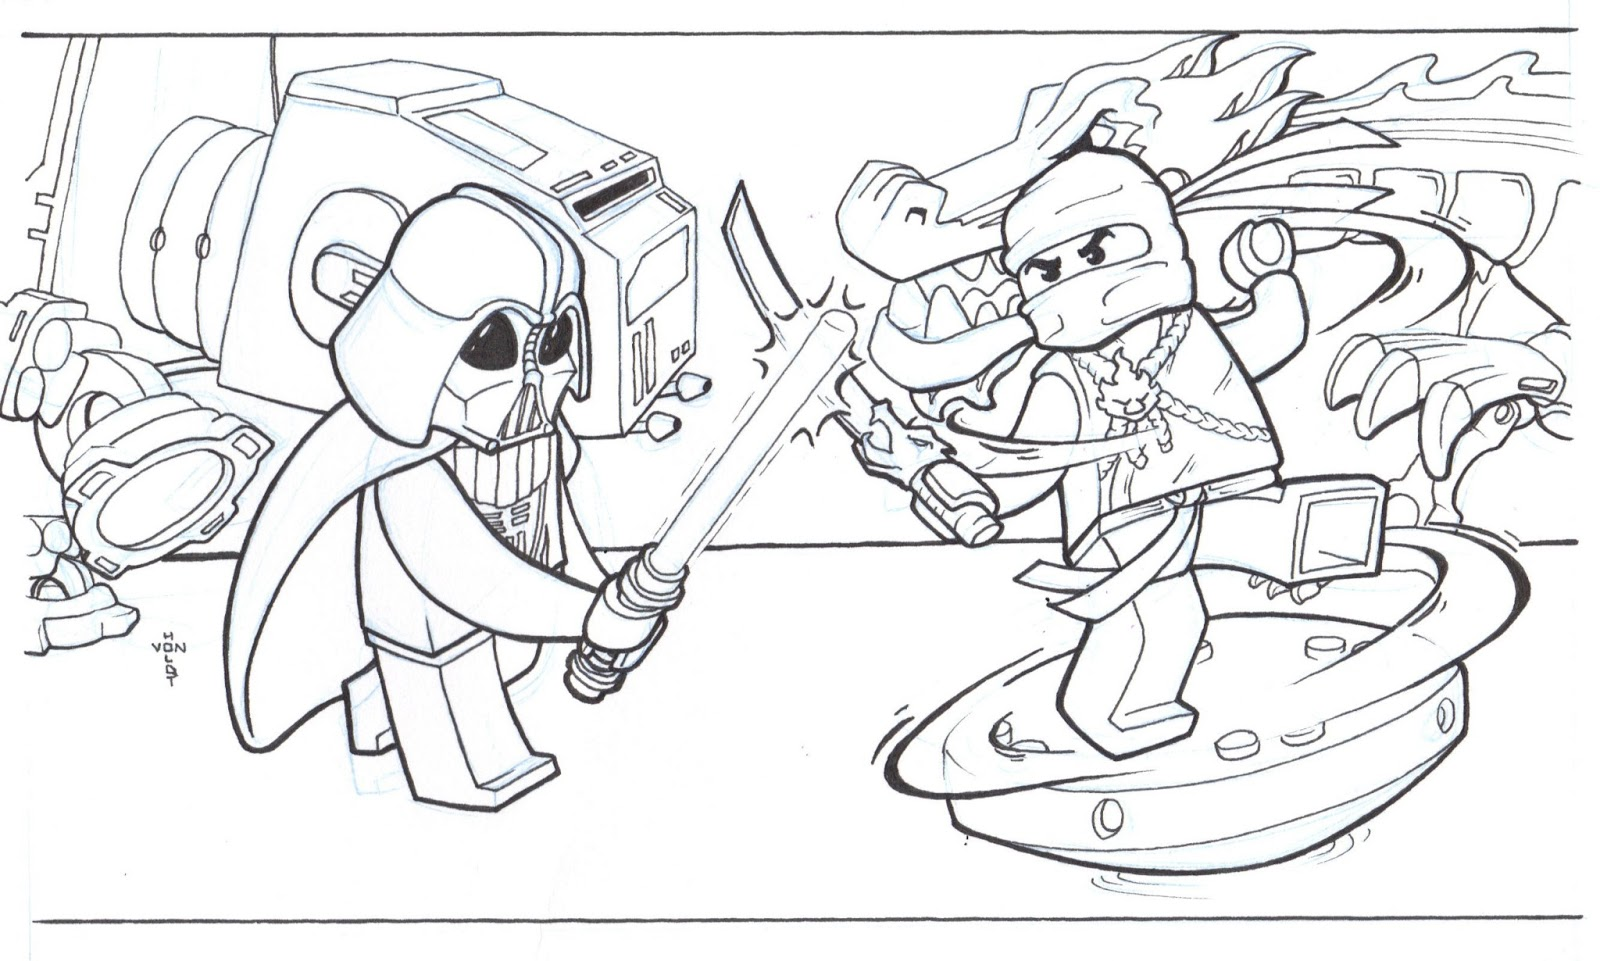 free coloring pages lego - lego ninjago coloring pages free printable pictures